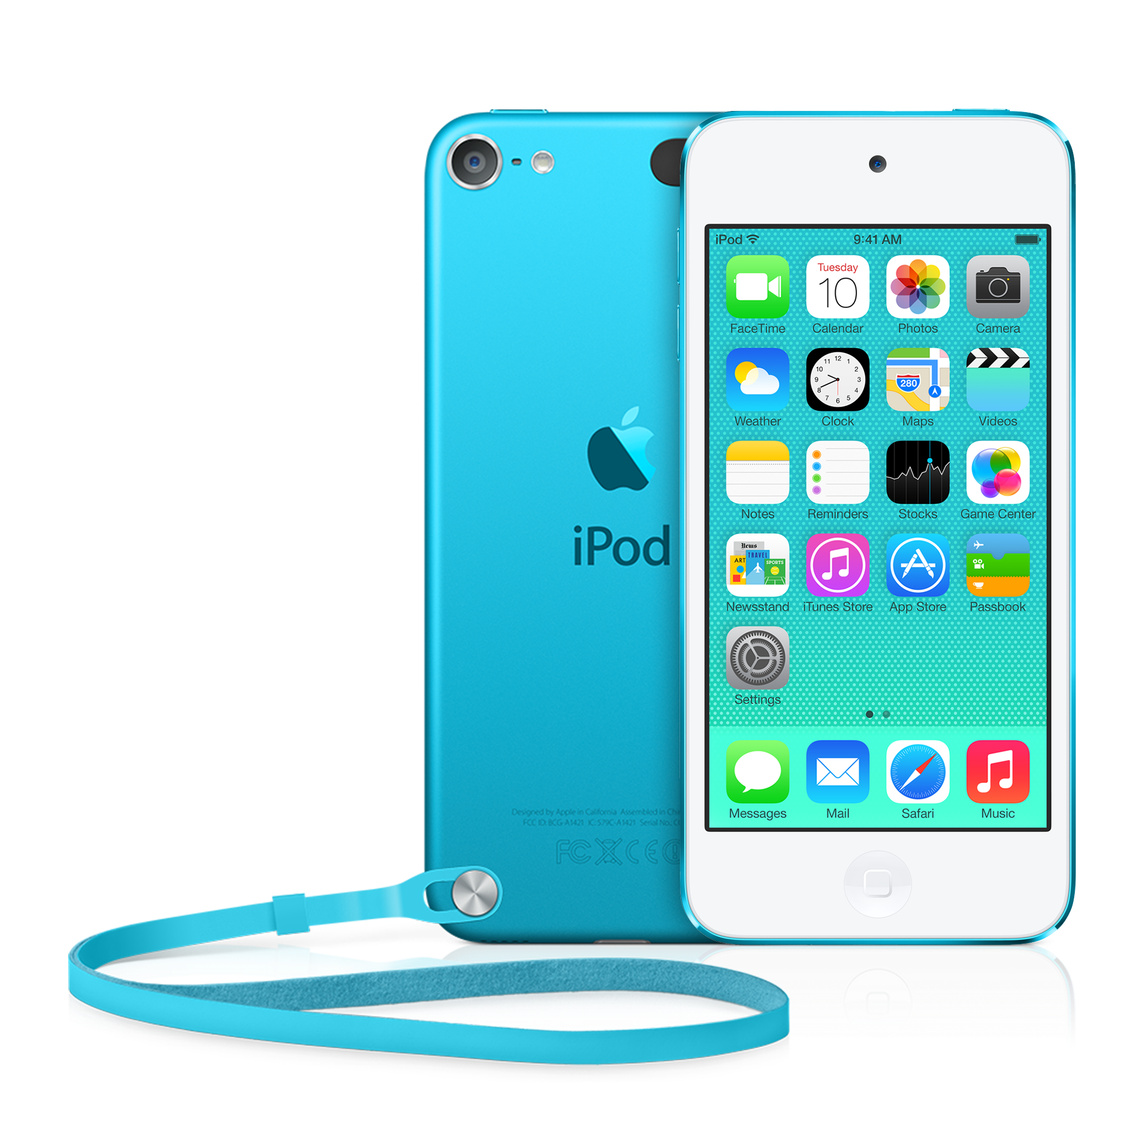 Refurbished iPod touch 16GB - Blue (5th generation)